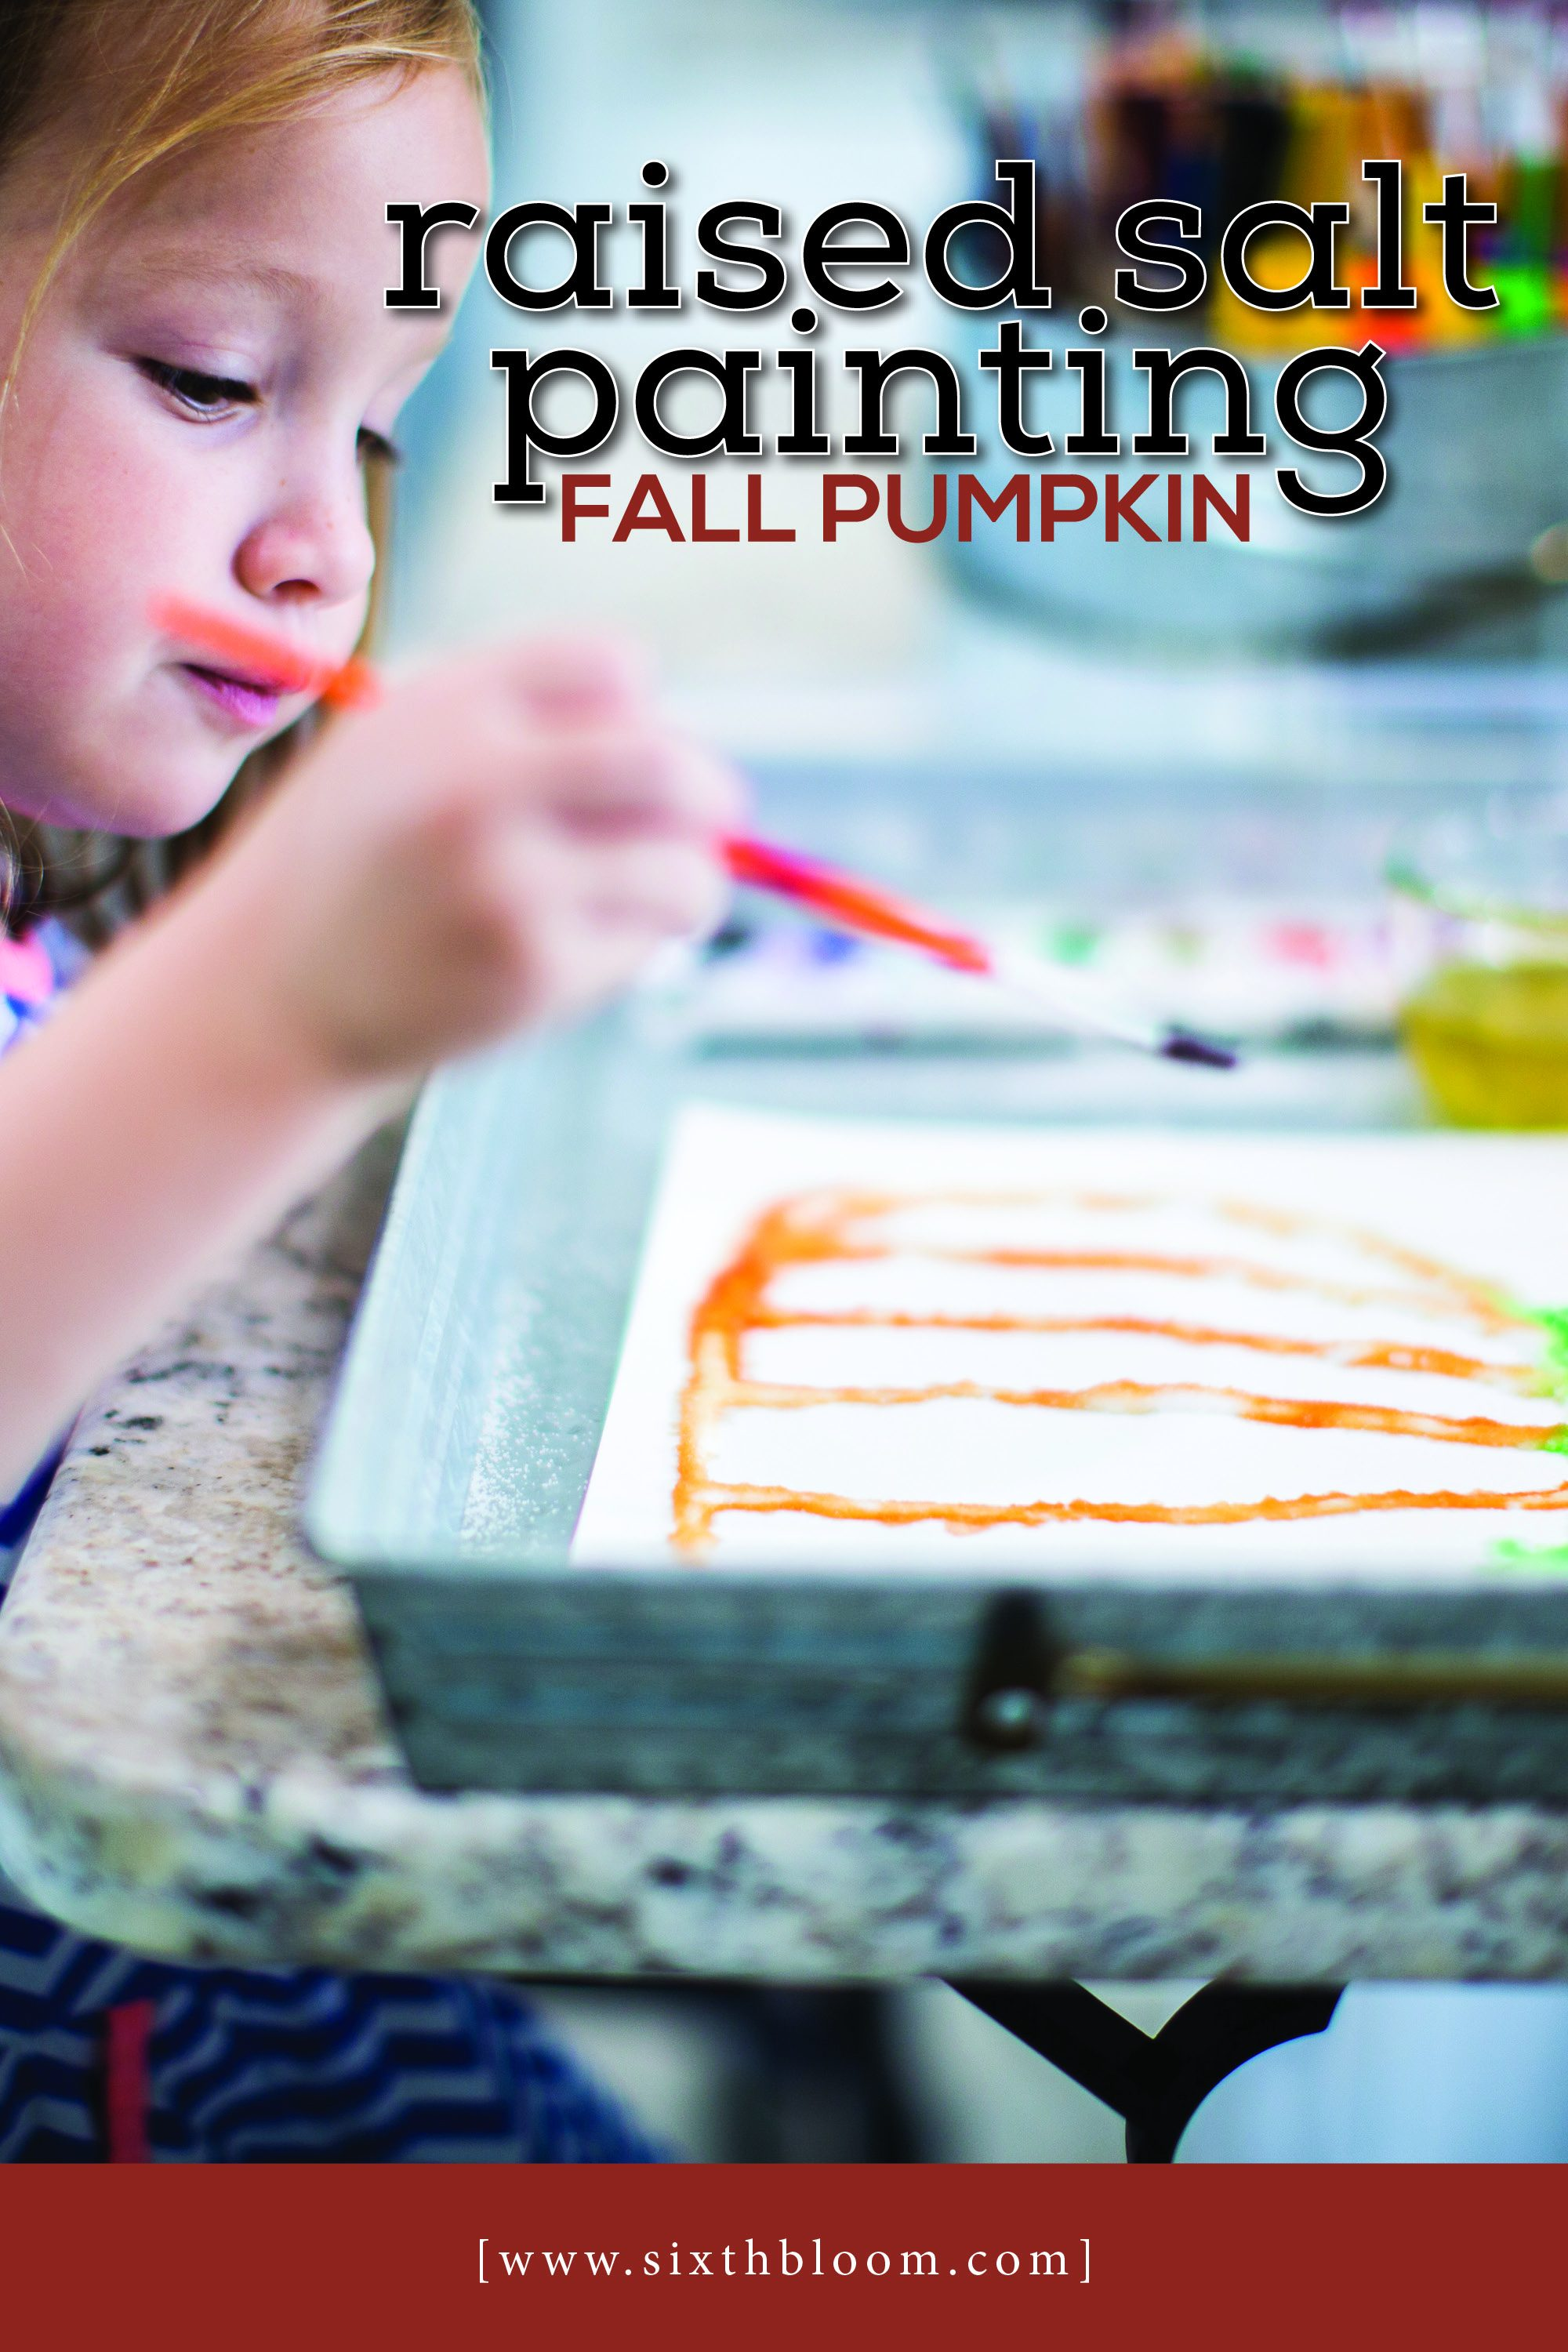 preschooler painting a pumpkin with watercolor and salt